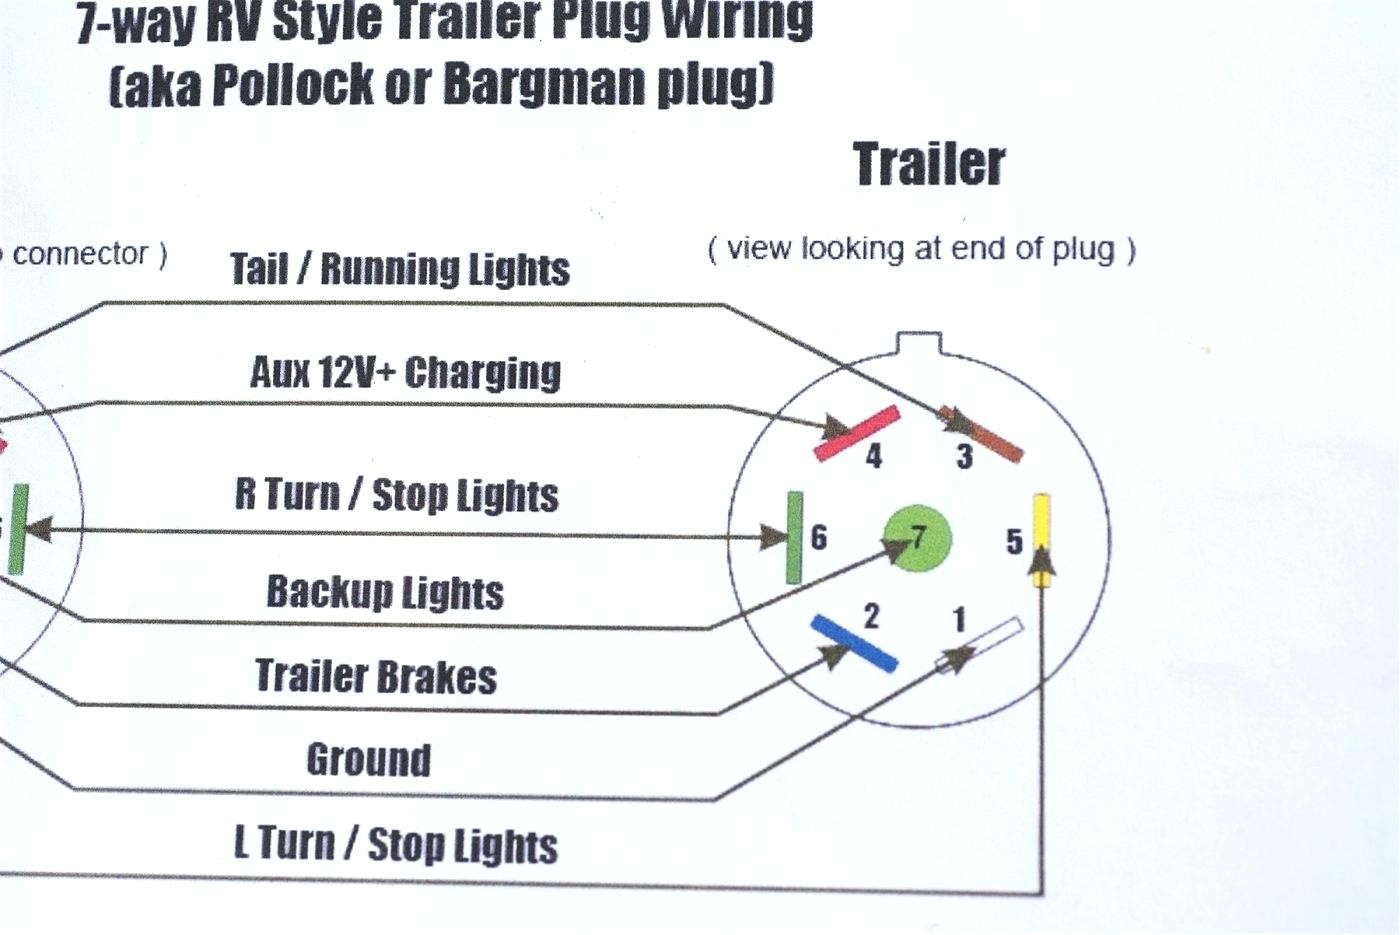 Full Size of Pj Car Trailer Wiring Diagram Charming Best Image Engine Terrific Wire Ideas